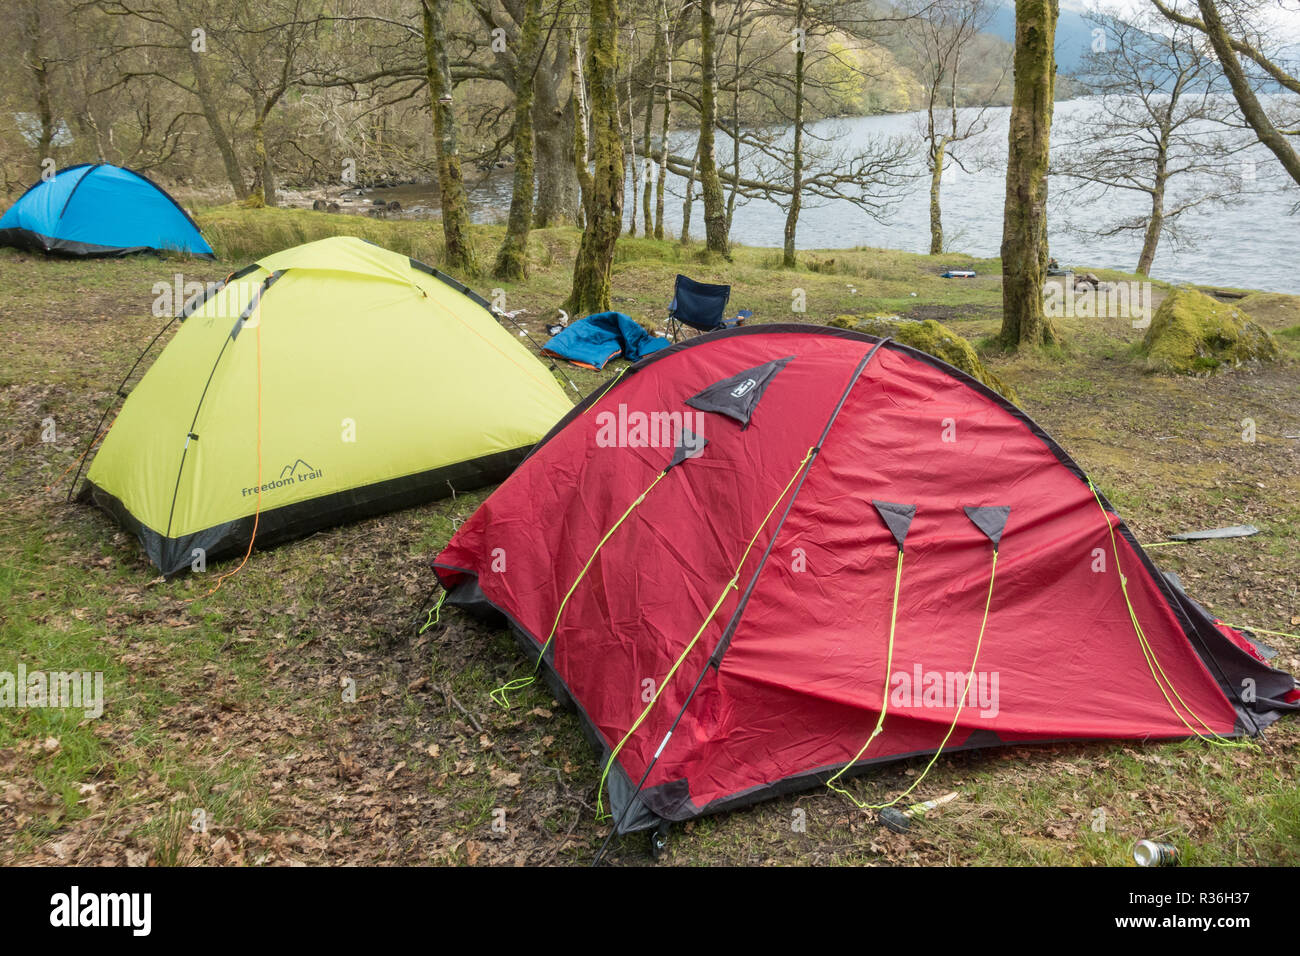 Loch Lomond litter - abandoned tents and camping equipment on the east shore north of Rowardennan just outside the camping management zone, Scotland - Stock Image